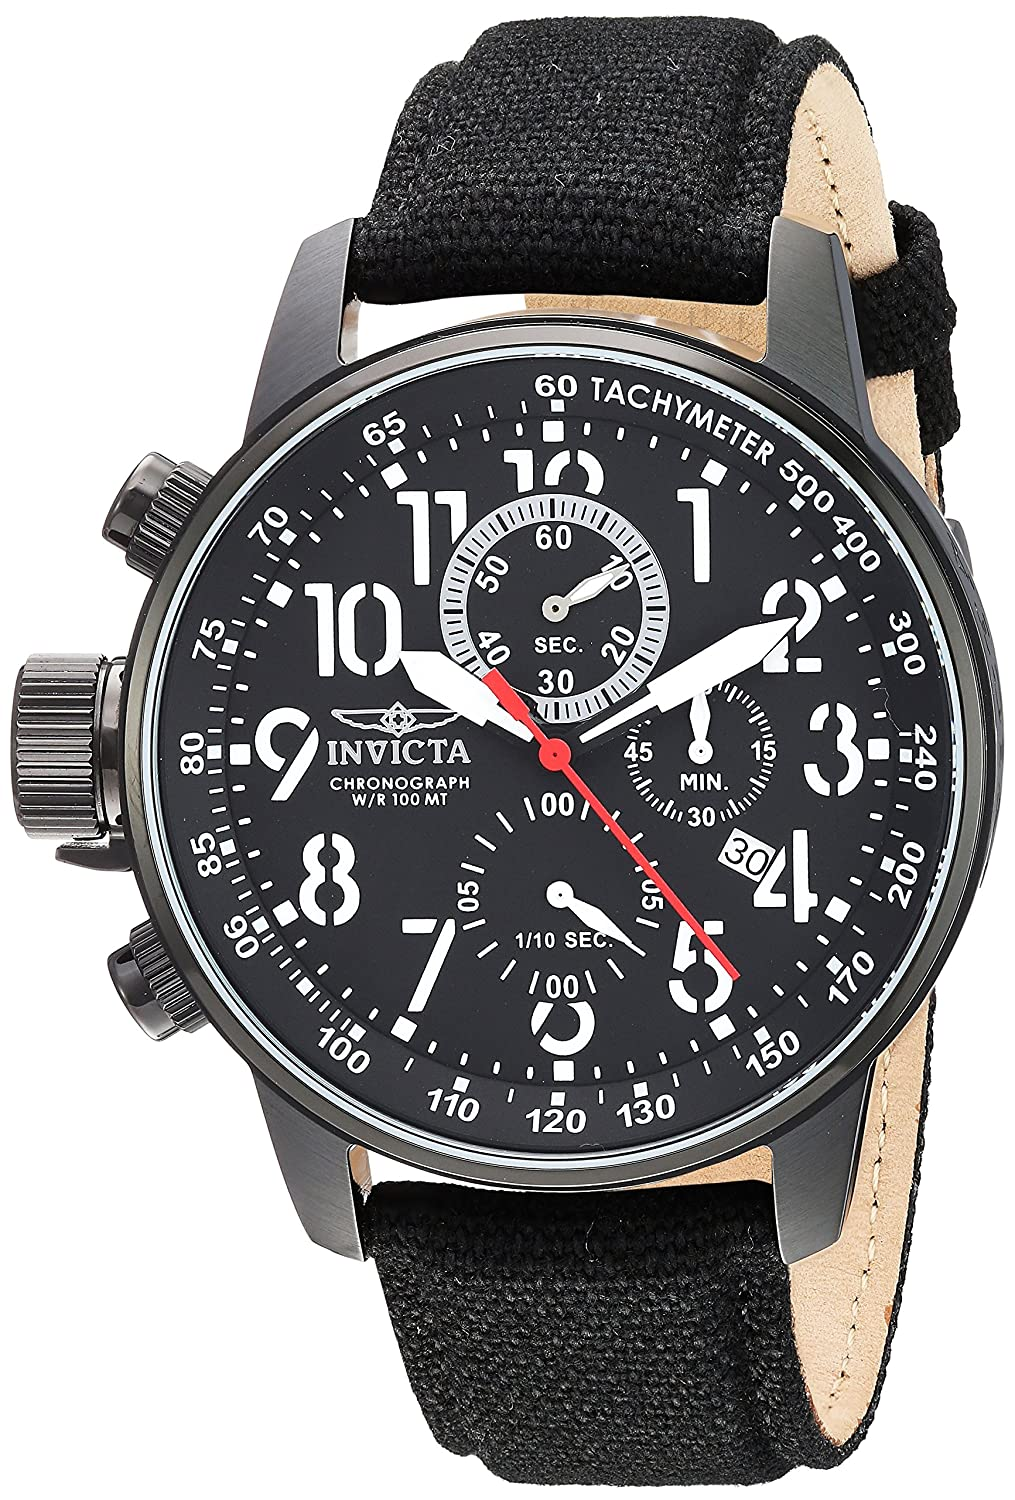 Invicta 1517 I Force Chronograph Watch advise